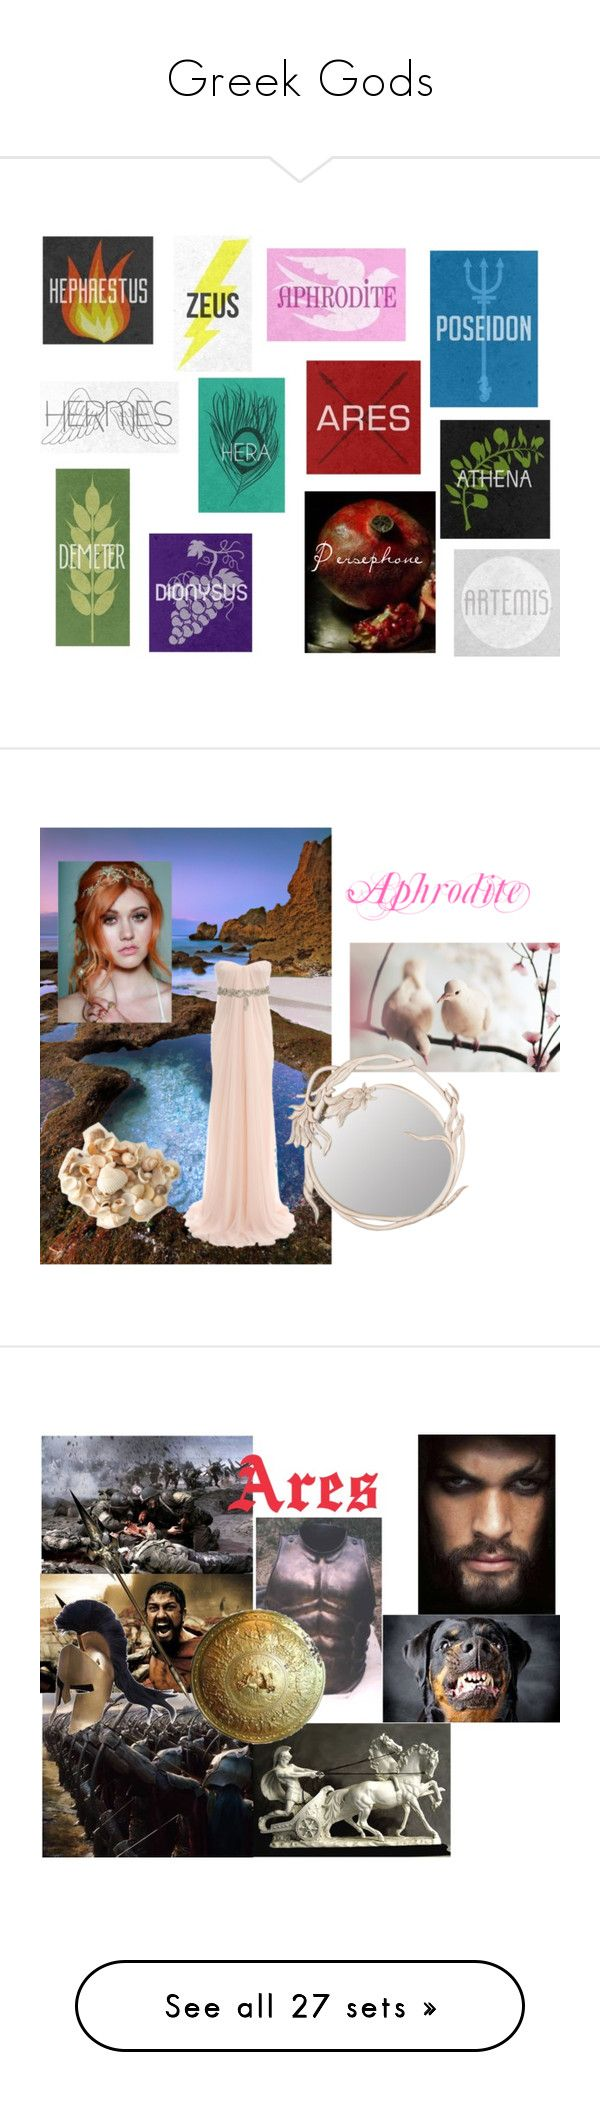 """Greek Gods"" by emma-frost-98 ❤ liked on Polyvore featuring greekgods, art, Alexander McQueen, Adonis Pauli, Temperley London, men's fashion, menswear, teen wolf, people - crystal reed and crystal reed"